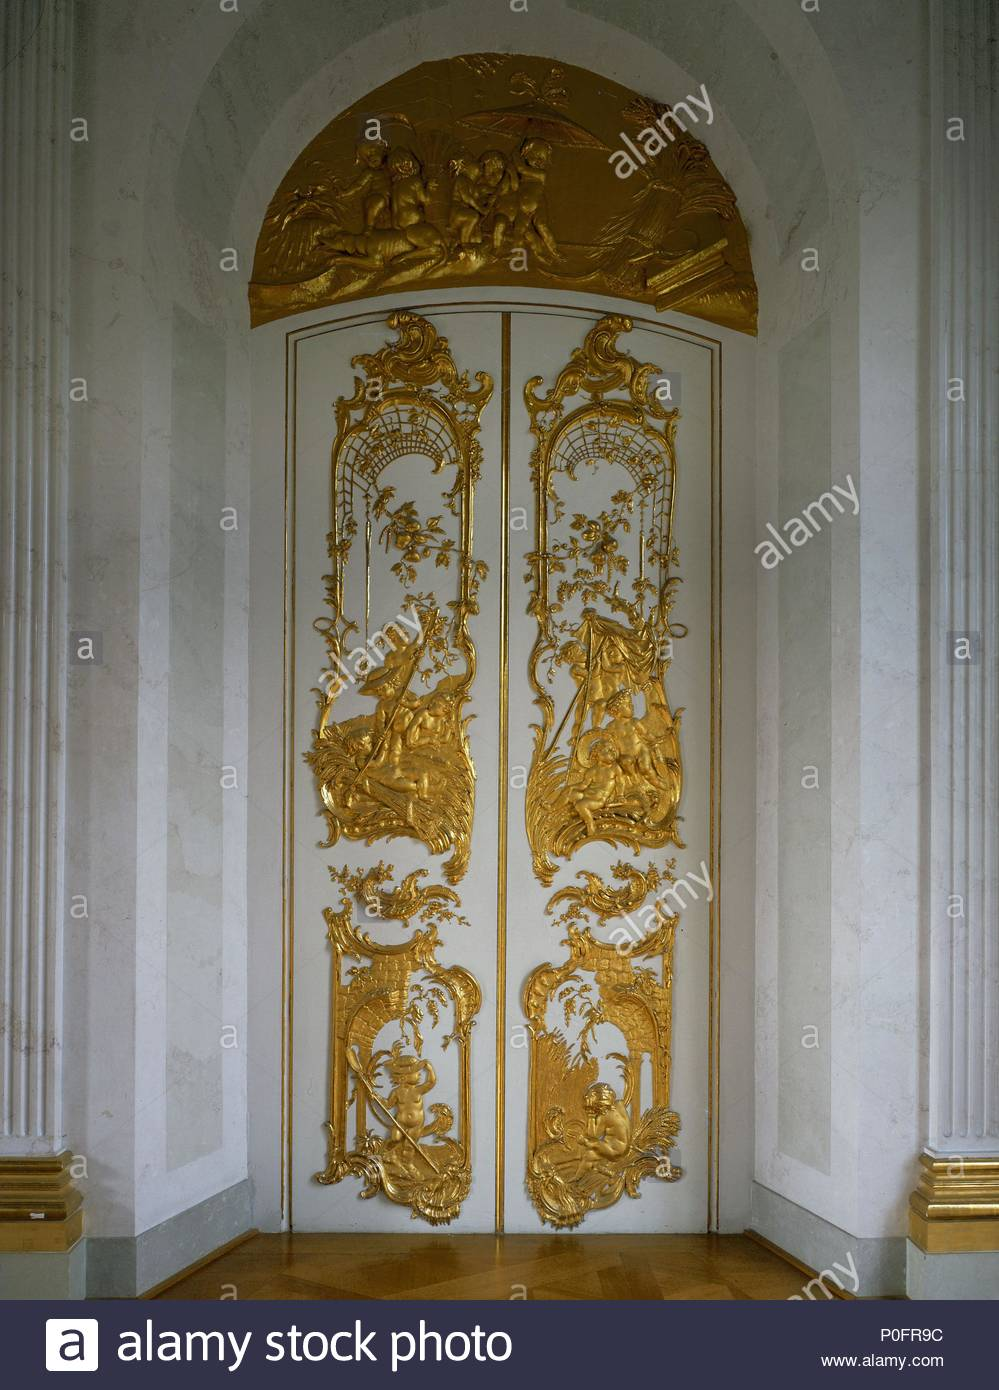 sham door with richly gilded stucco work in the white gallery of